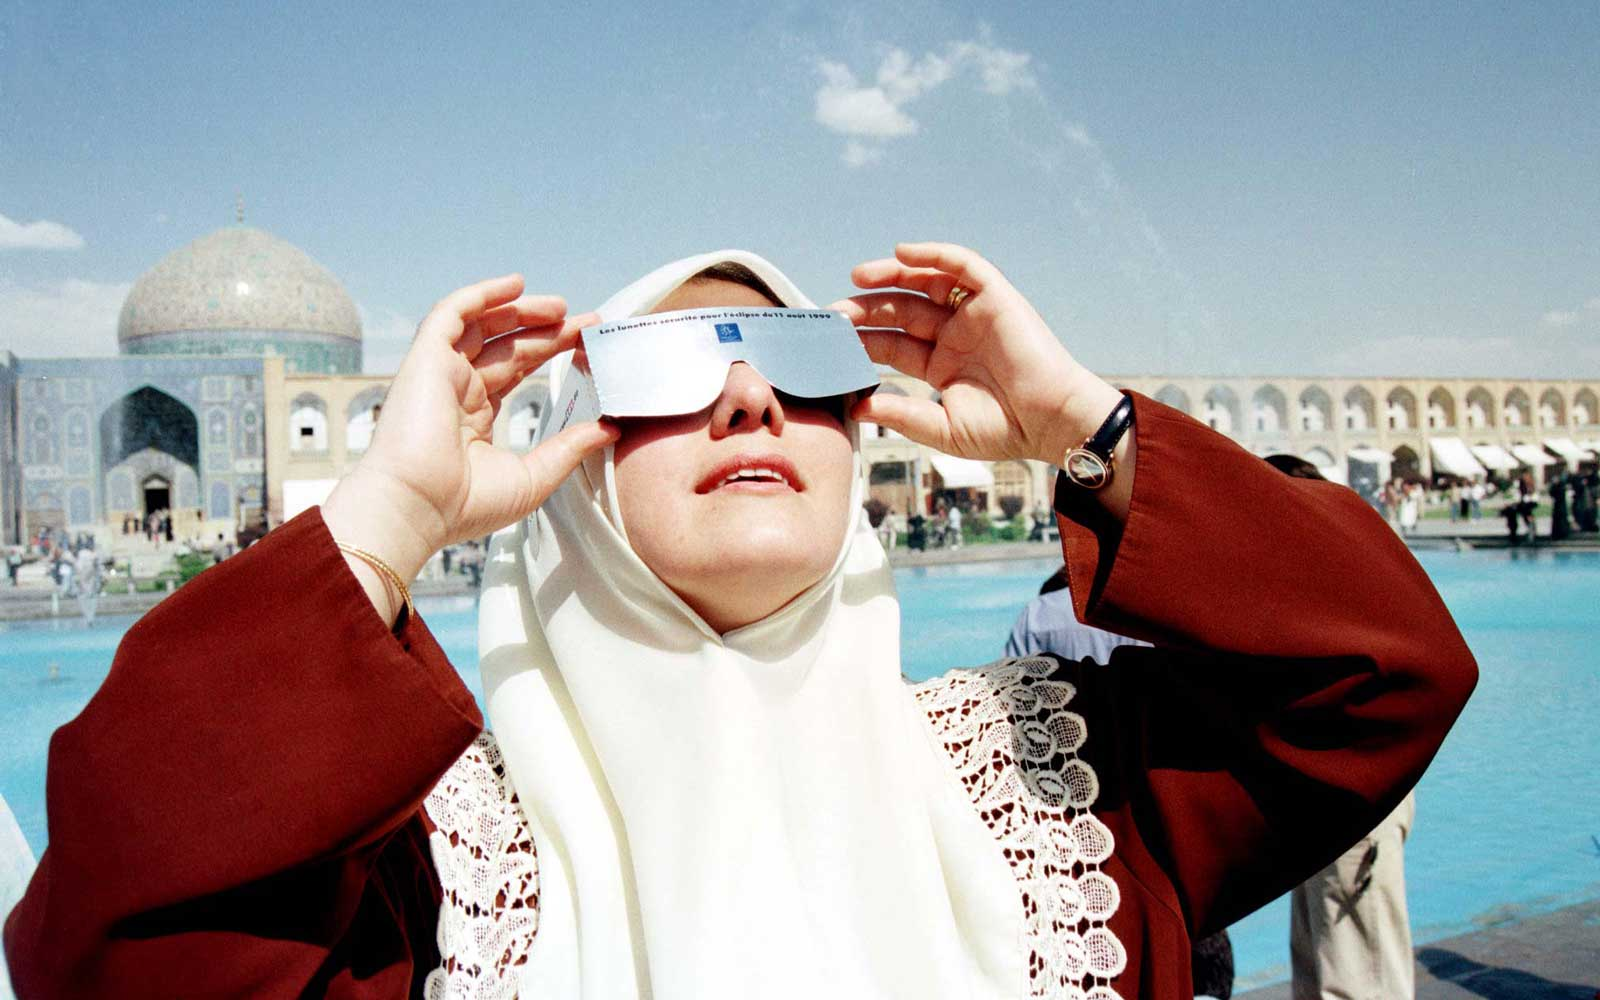 A woman viewing a total solar eclipse through filtered glasses in Naqsh-e Jahan Square, Isfahan, Iran